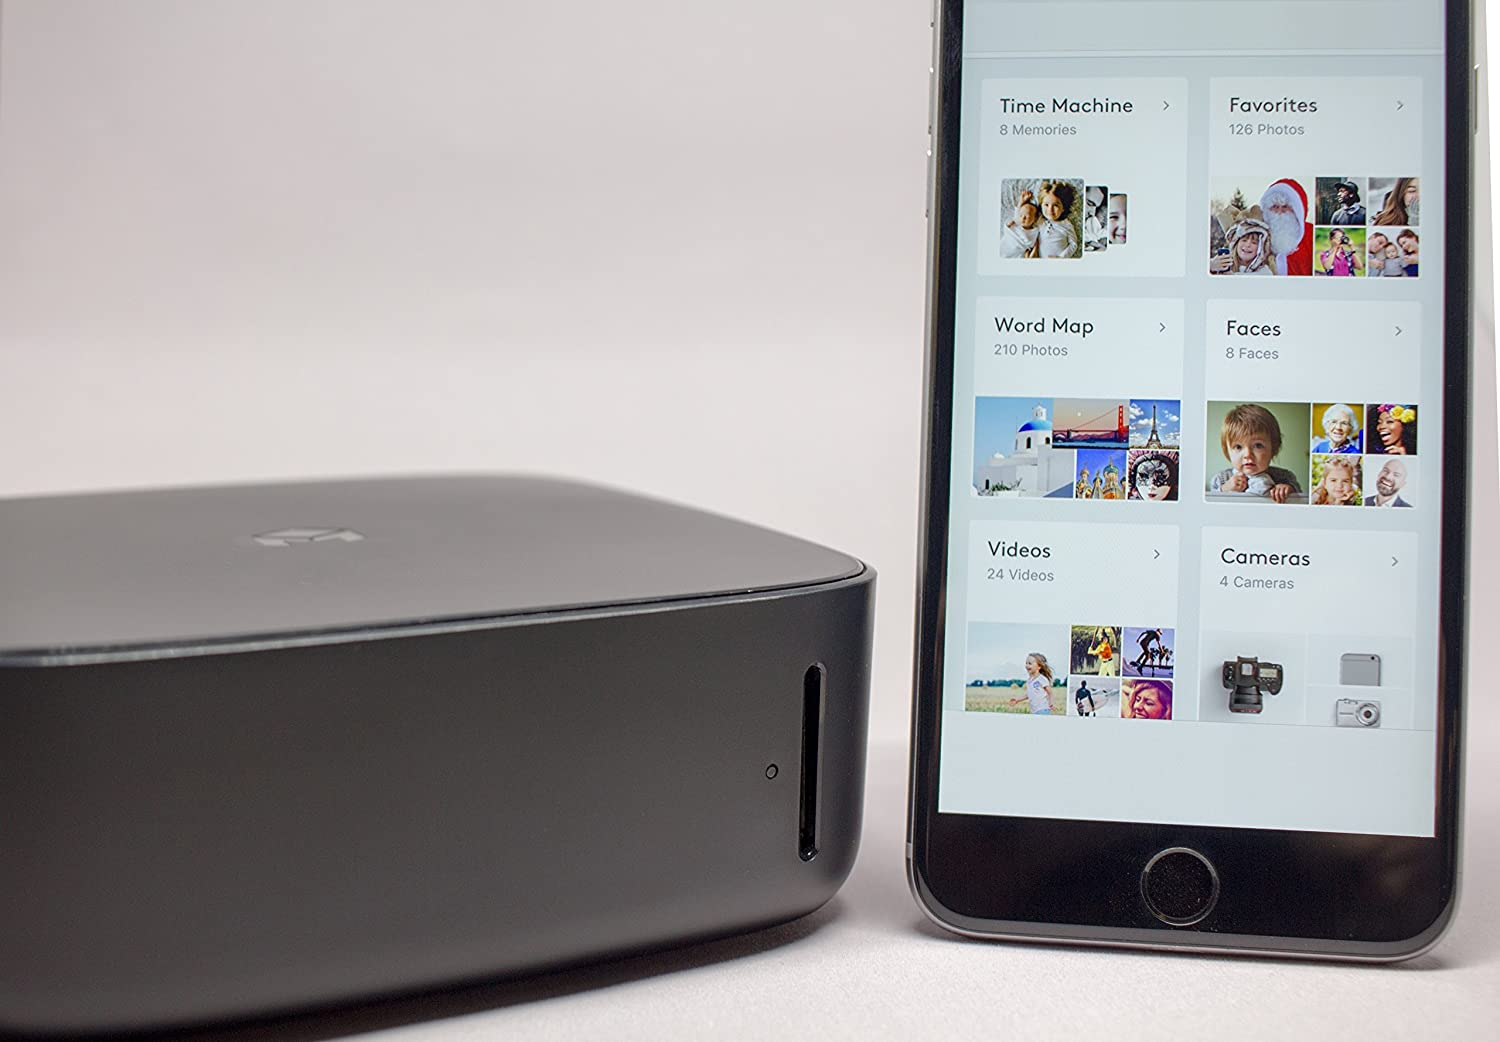 1TB Storage Included Smart Photo and Video Storage Device